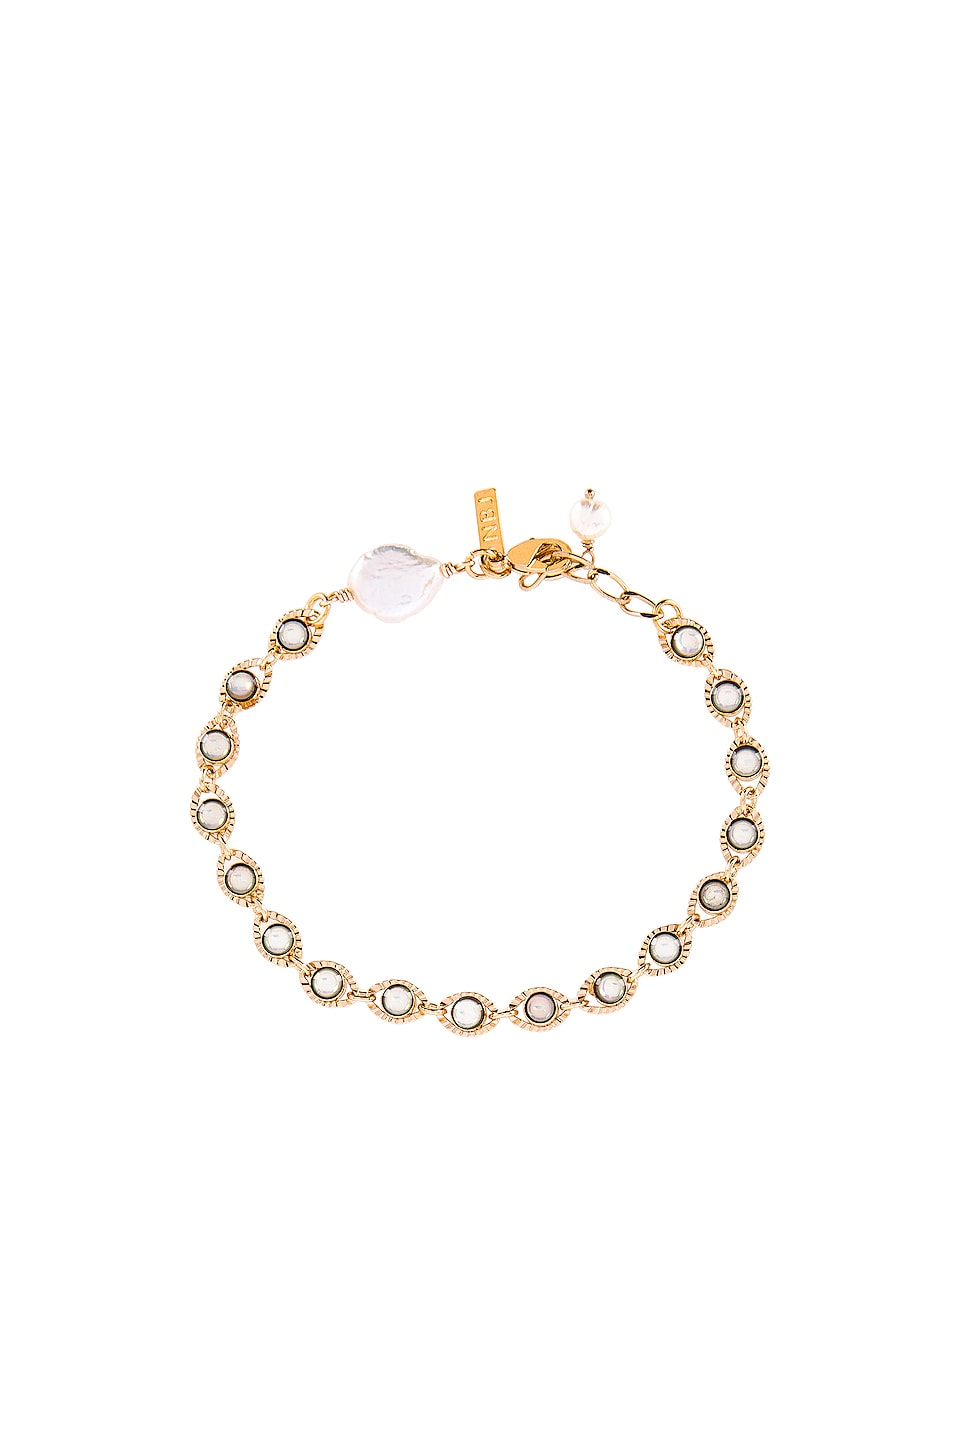 Natalie B Jewelry Dreaming Opals Bracelet in Gold